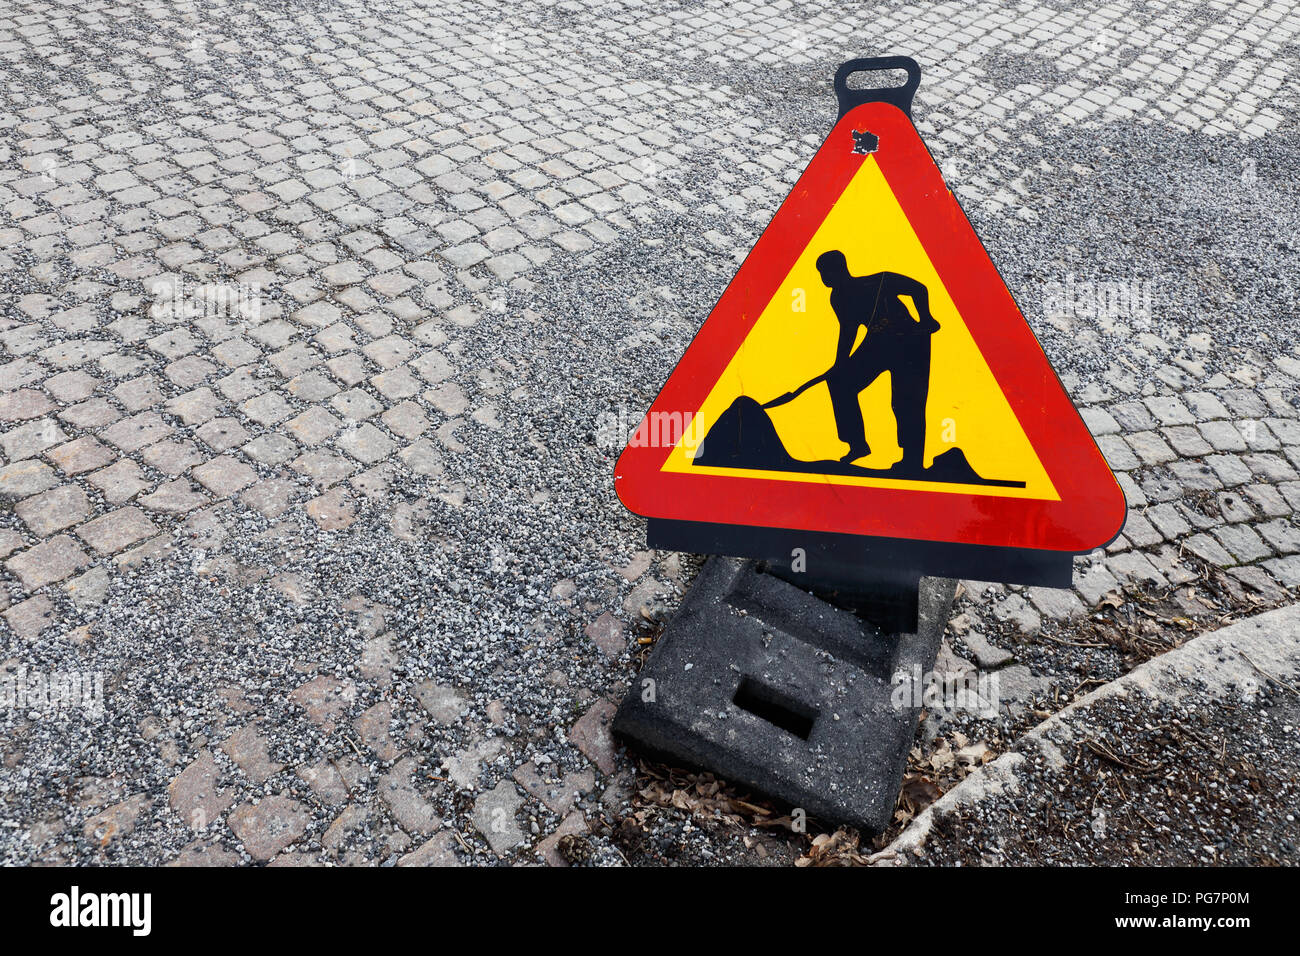 High angel view of a triangle shaped temporary roadwork warning sign placed on a street paved with cobbelstones with gravel on top. - Stock Image